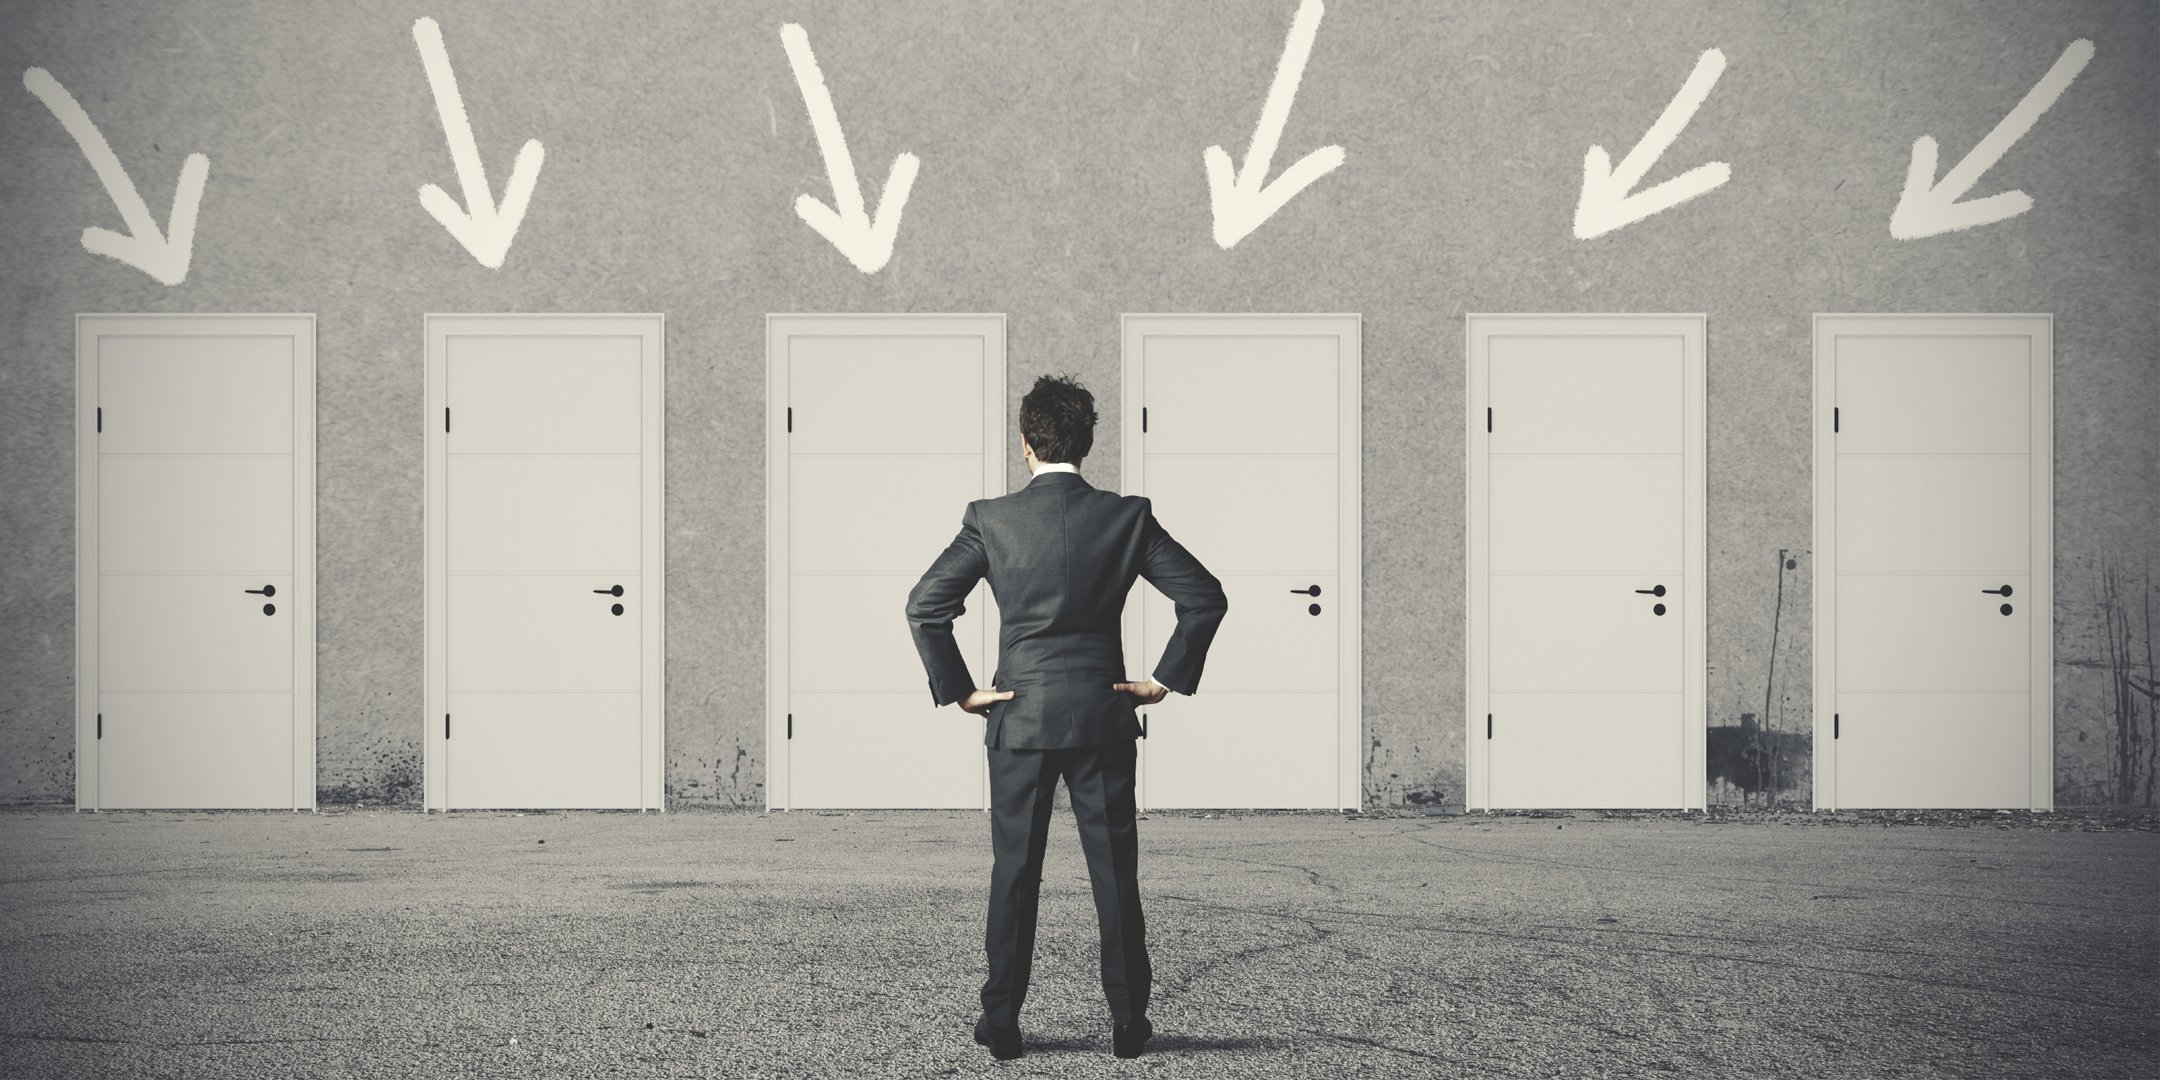 Man standing in front of doors choosing which one to go through.